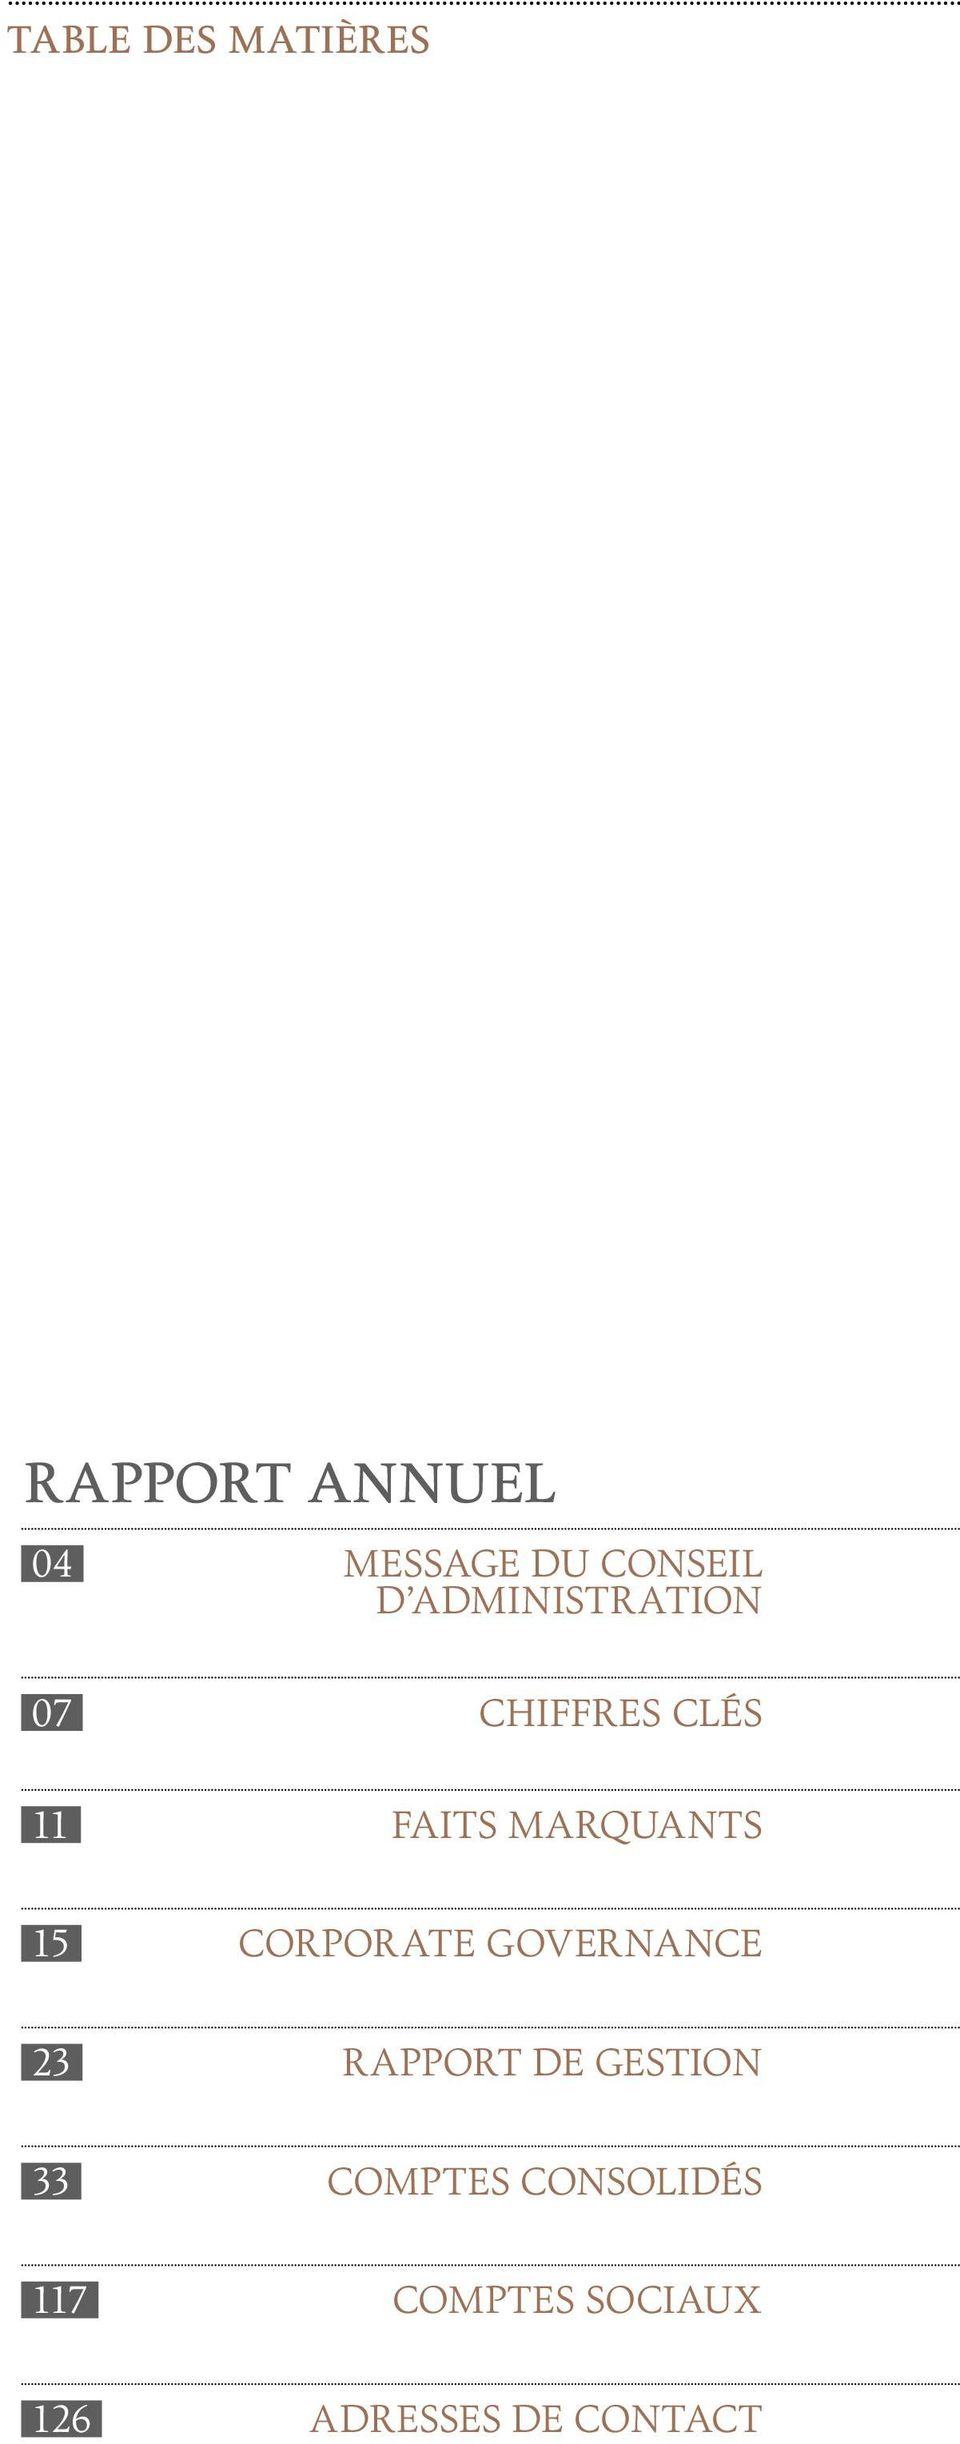 marquants 15 Corporate governance 23 RAPPORT DE